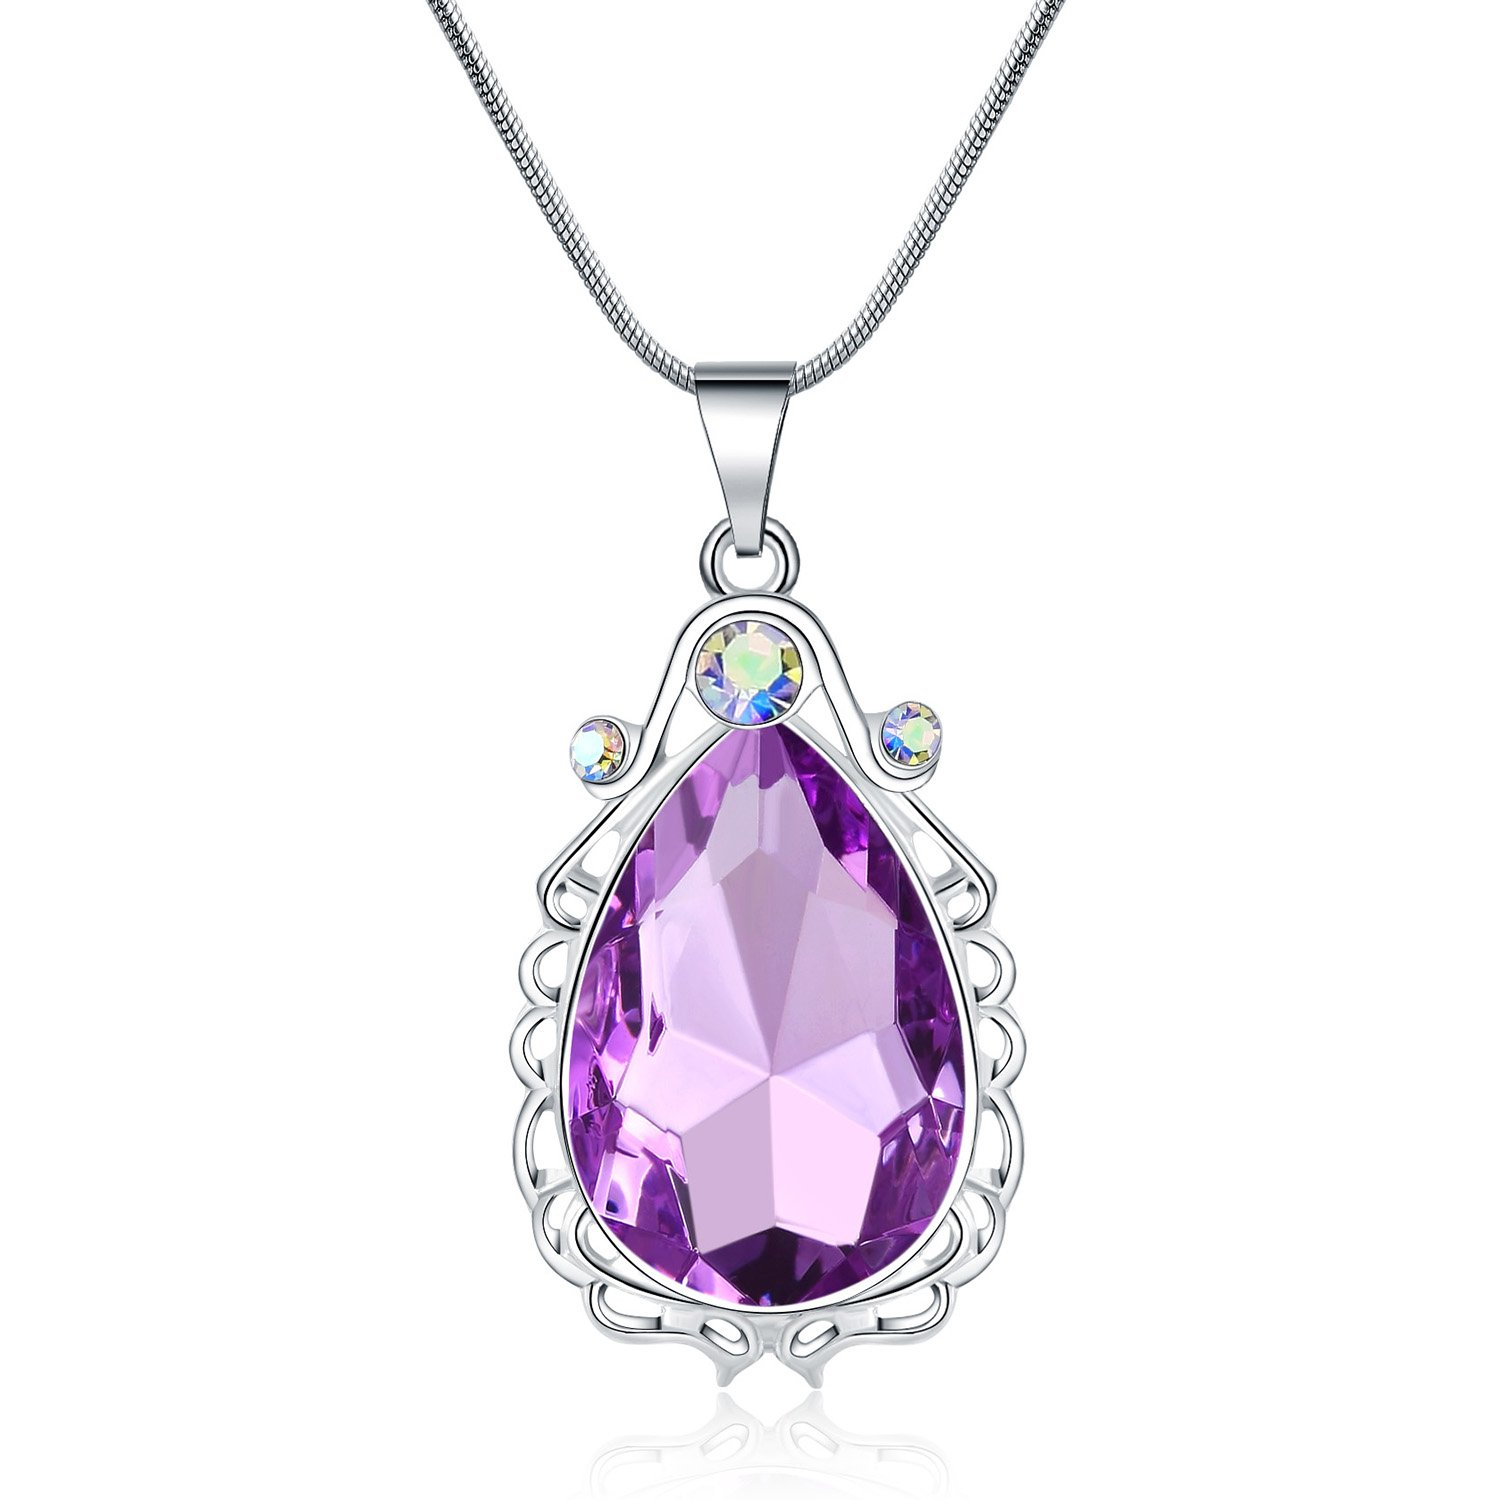 Sofia Necklace Amulet Teardrop Amethyst Pendant Necklace Sofia Princess Costumes Jewelry for Little Girls